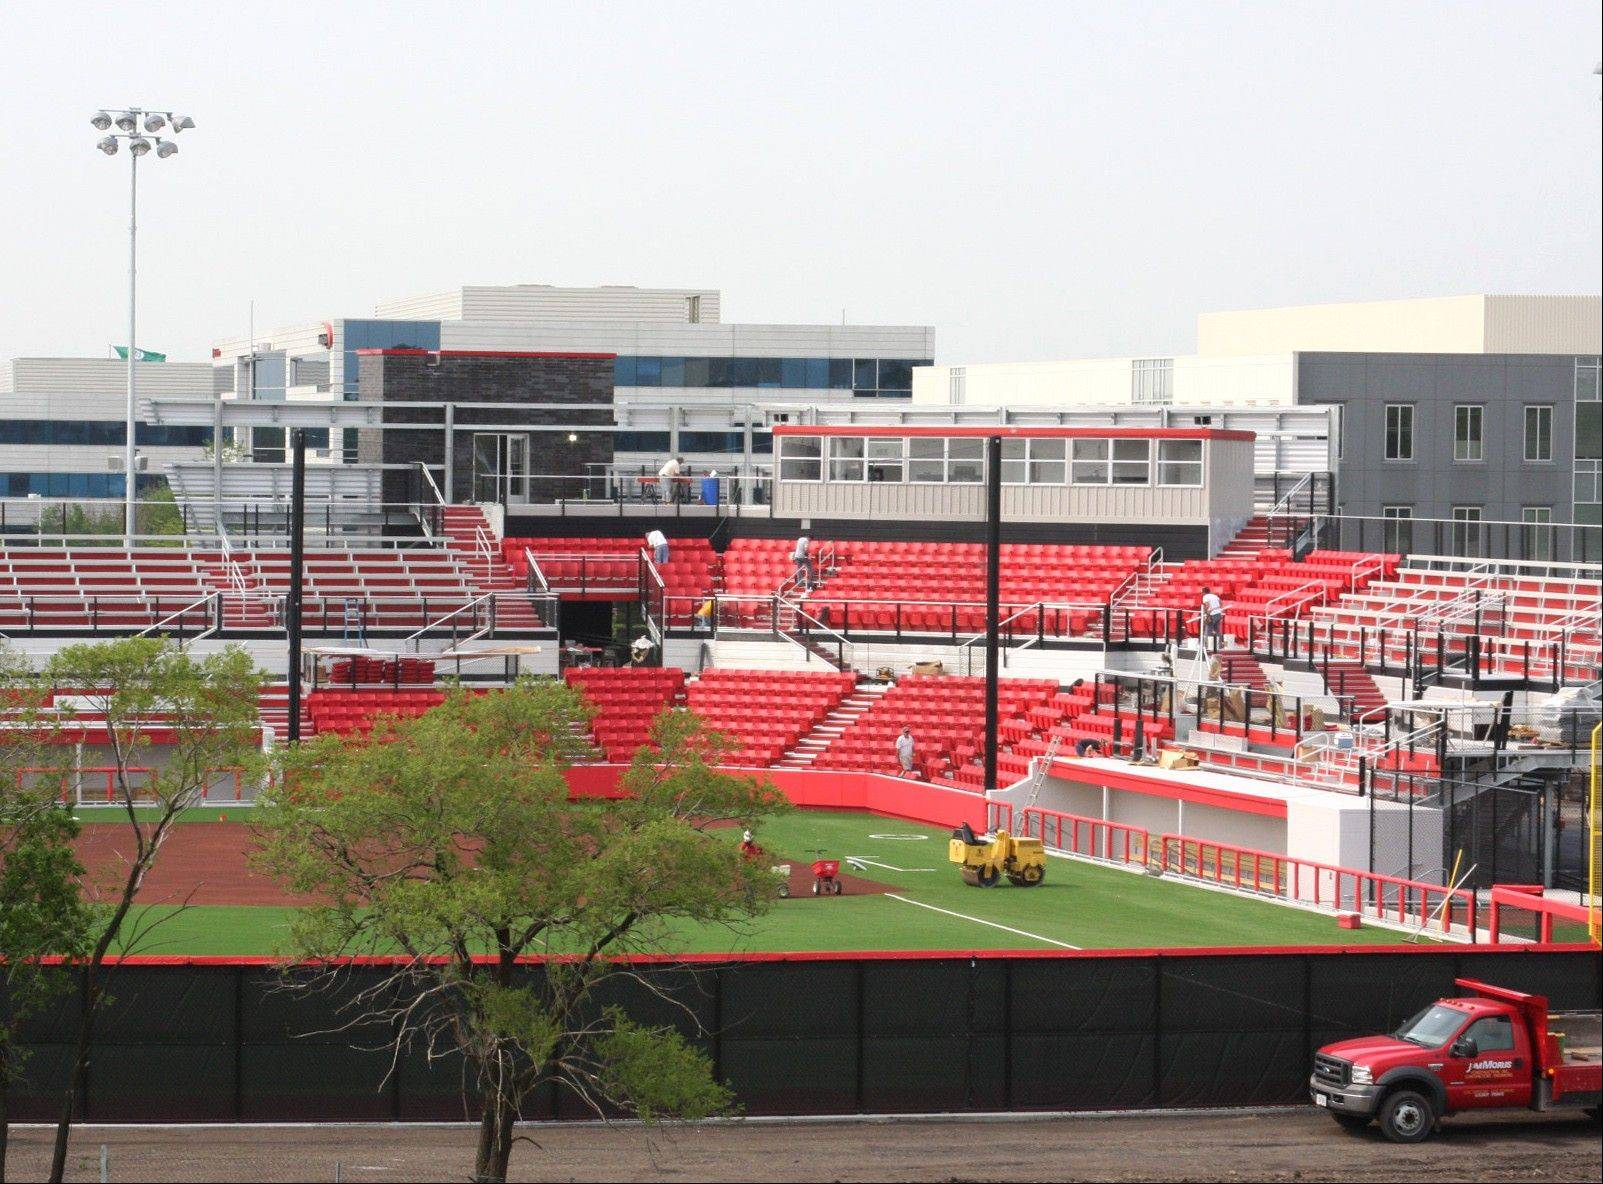 Photo courtesy of Mack Communications � The Chicago Bandits professional women's softball team will play an exhibition game Saturday to inaugurate the team's new home at Rosemont Stadium.